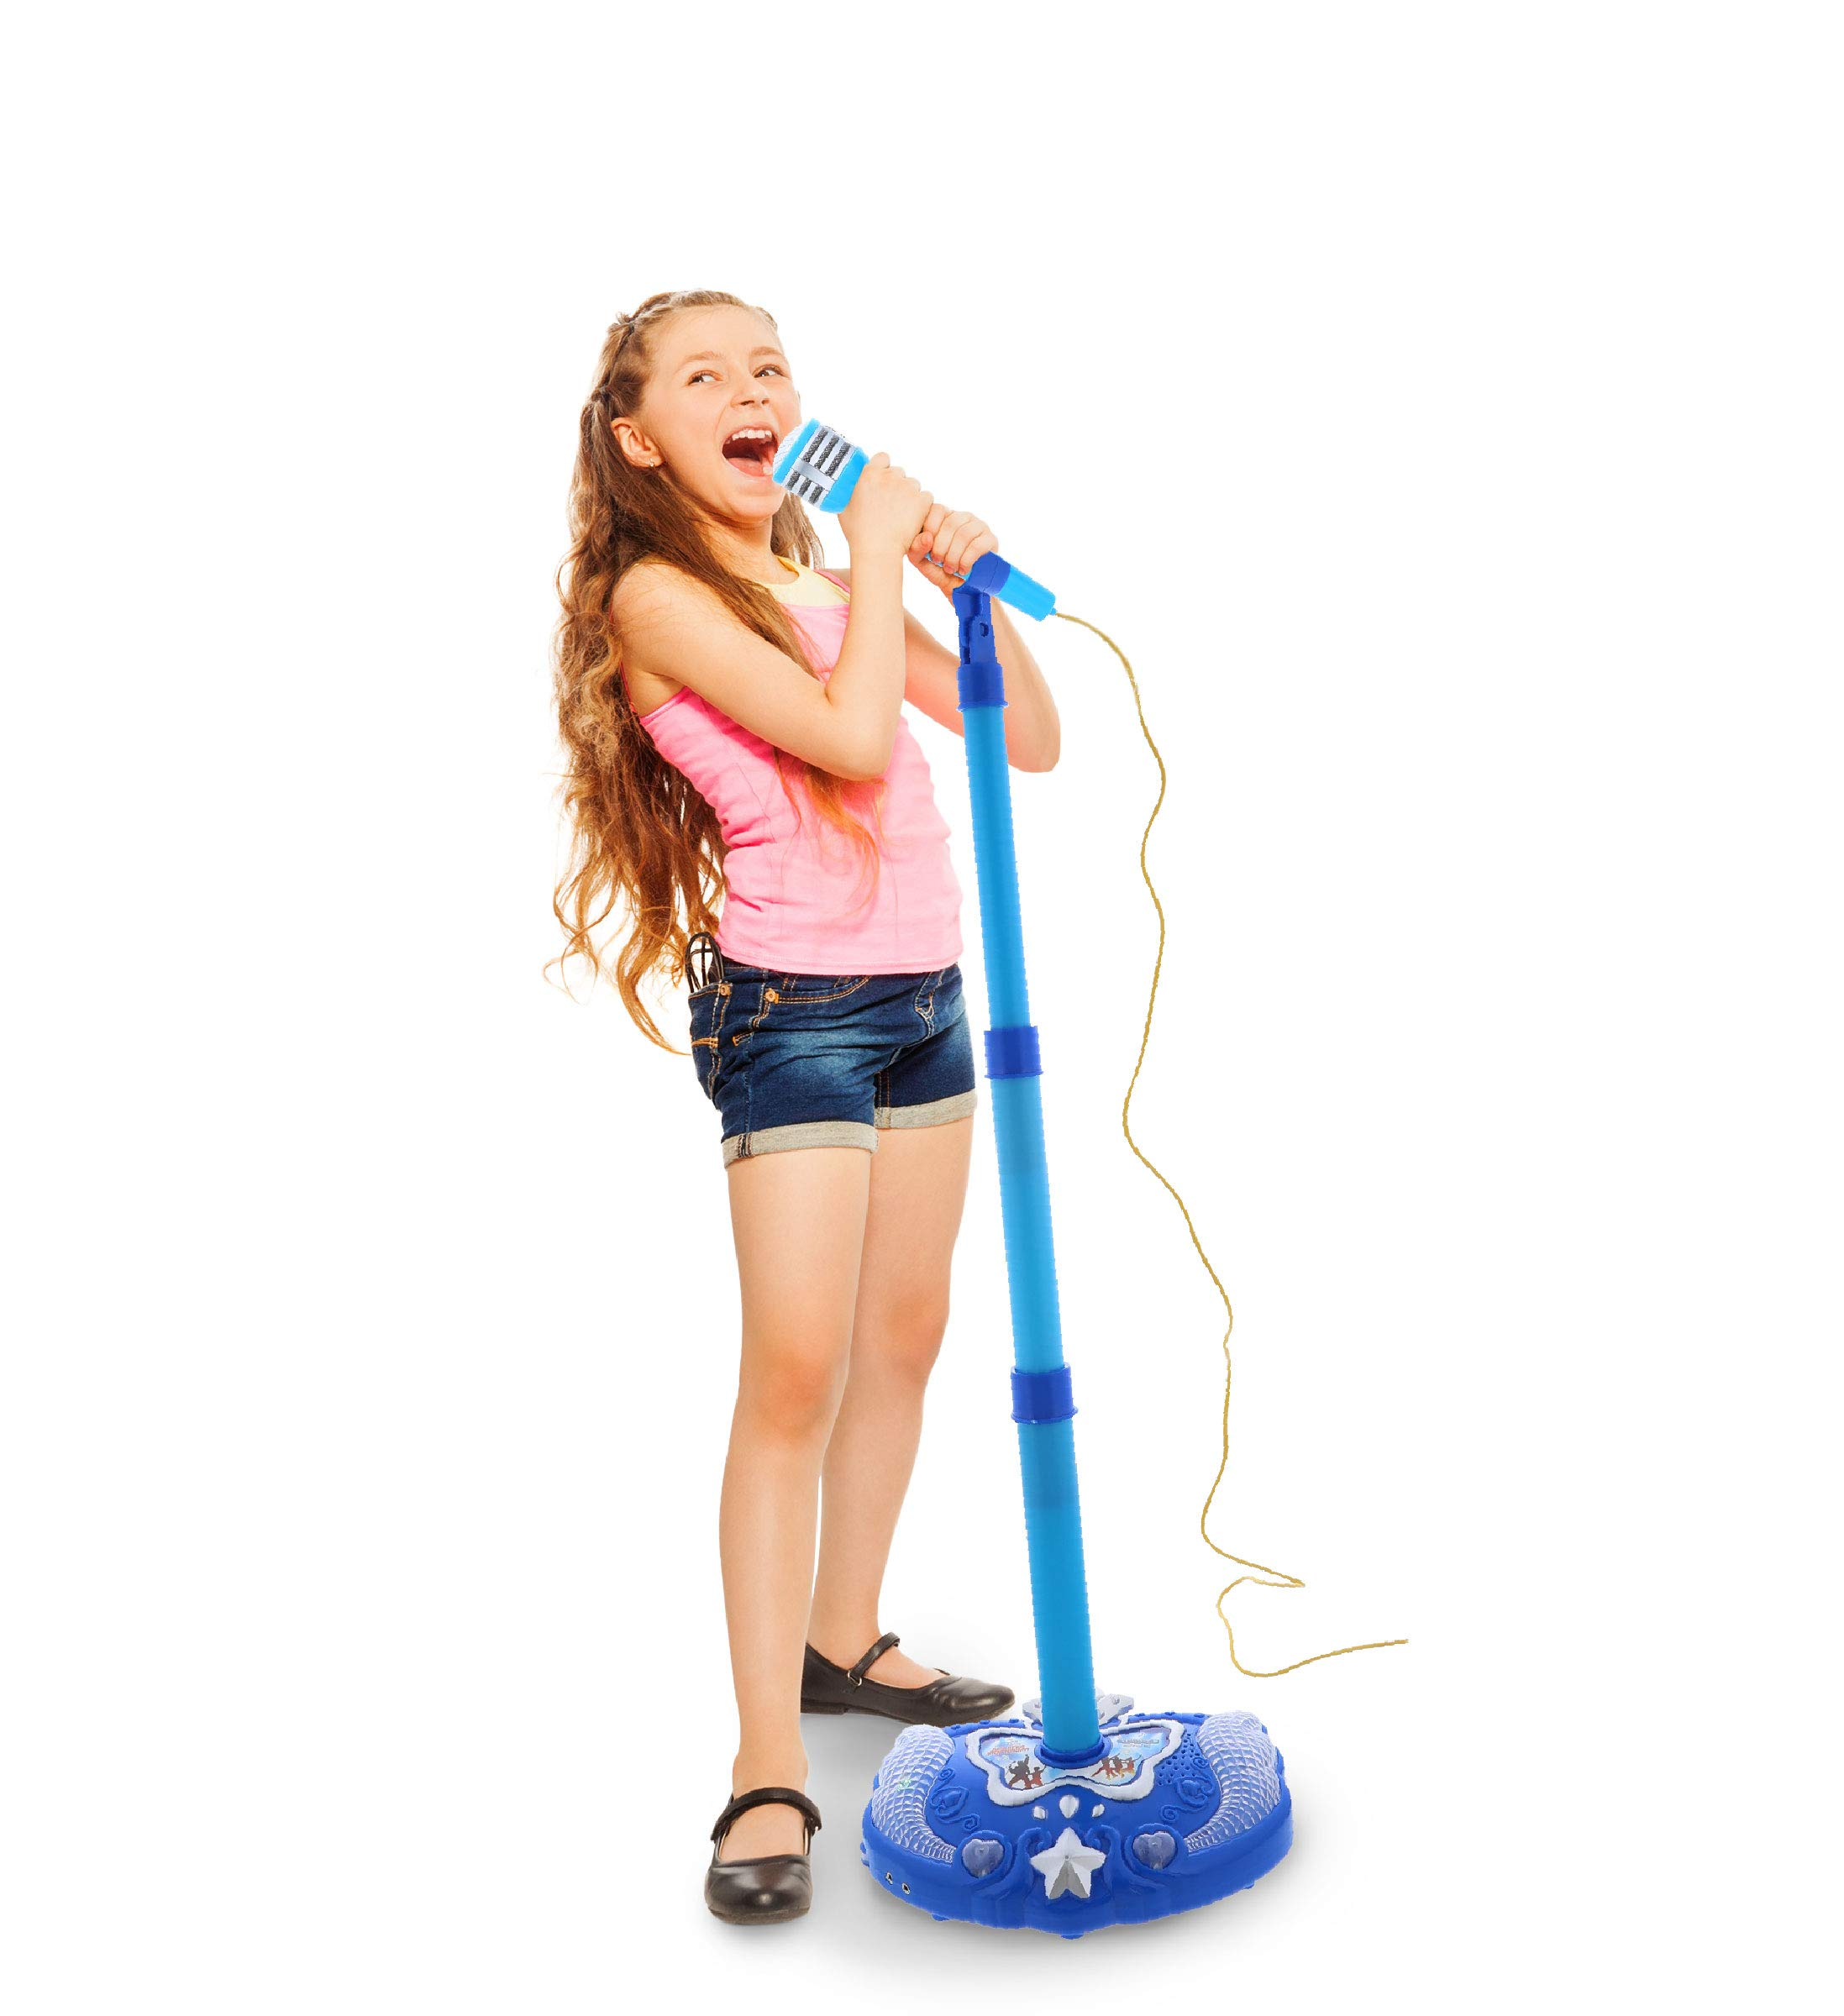 Mozlly Blue Light Up Karaoke Machine with Toy Microphone & Adjustable Stand, Connect to MP3 Player AUX Smart Phones for Solo Singing Parties Sing-A-Along Built in Speaker Flashing Lights for Kids by Mozlly (Image #4)